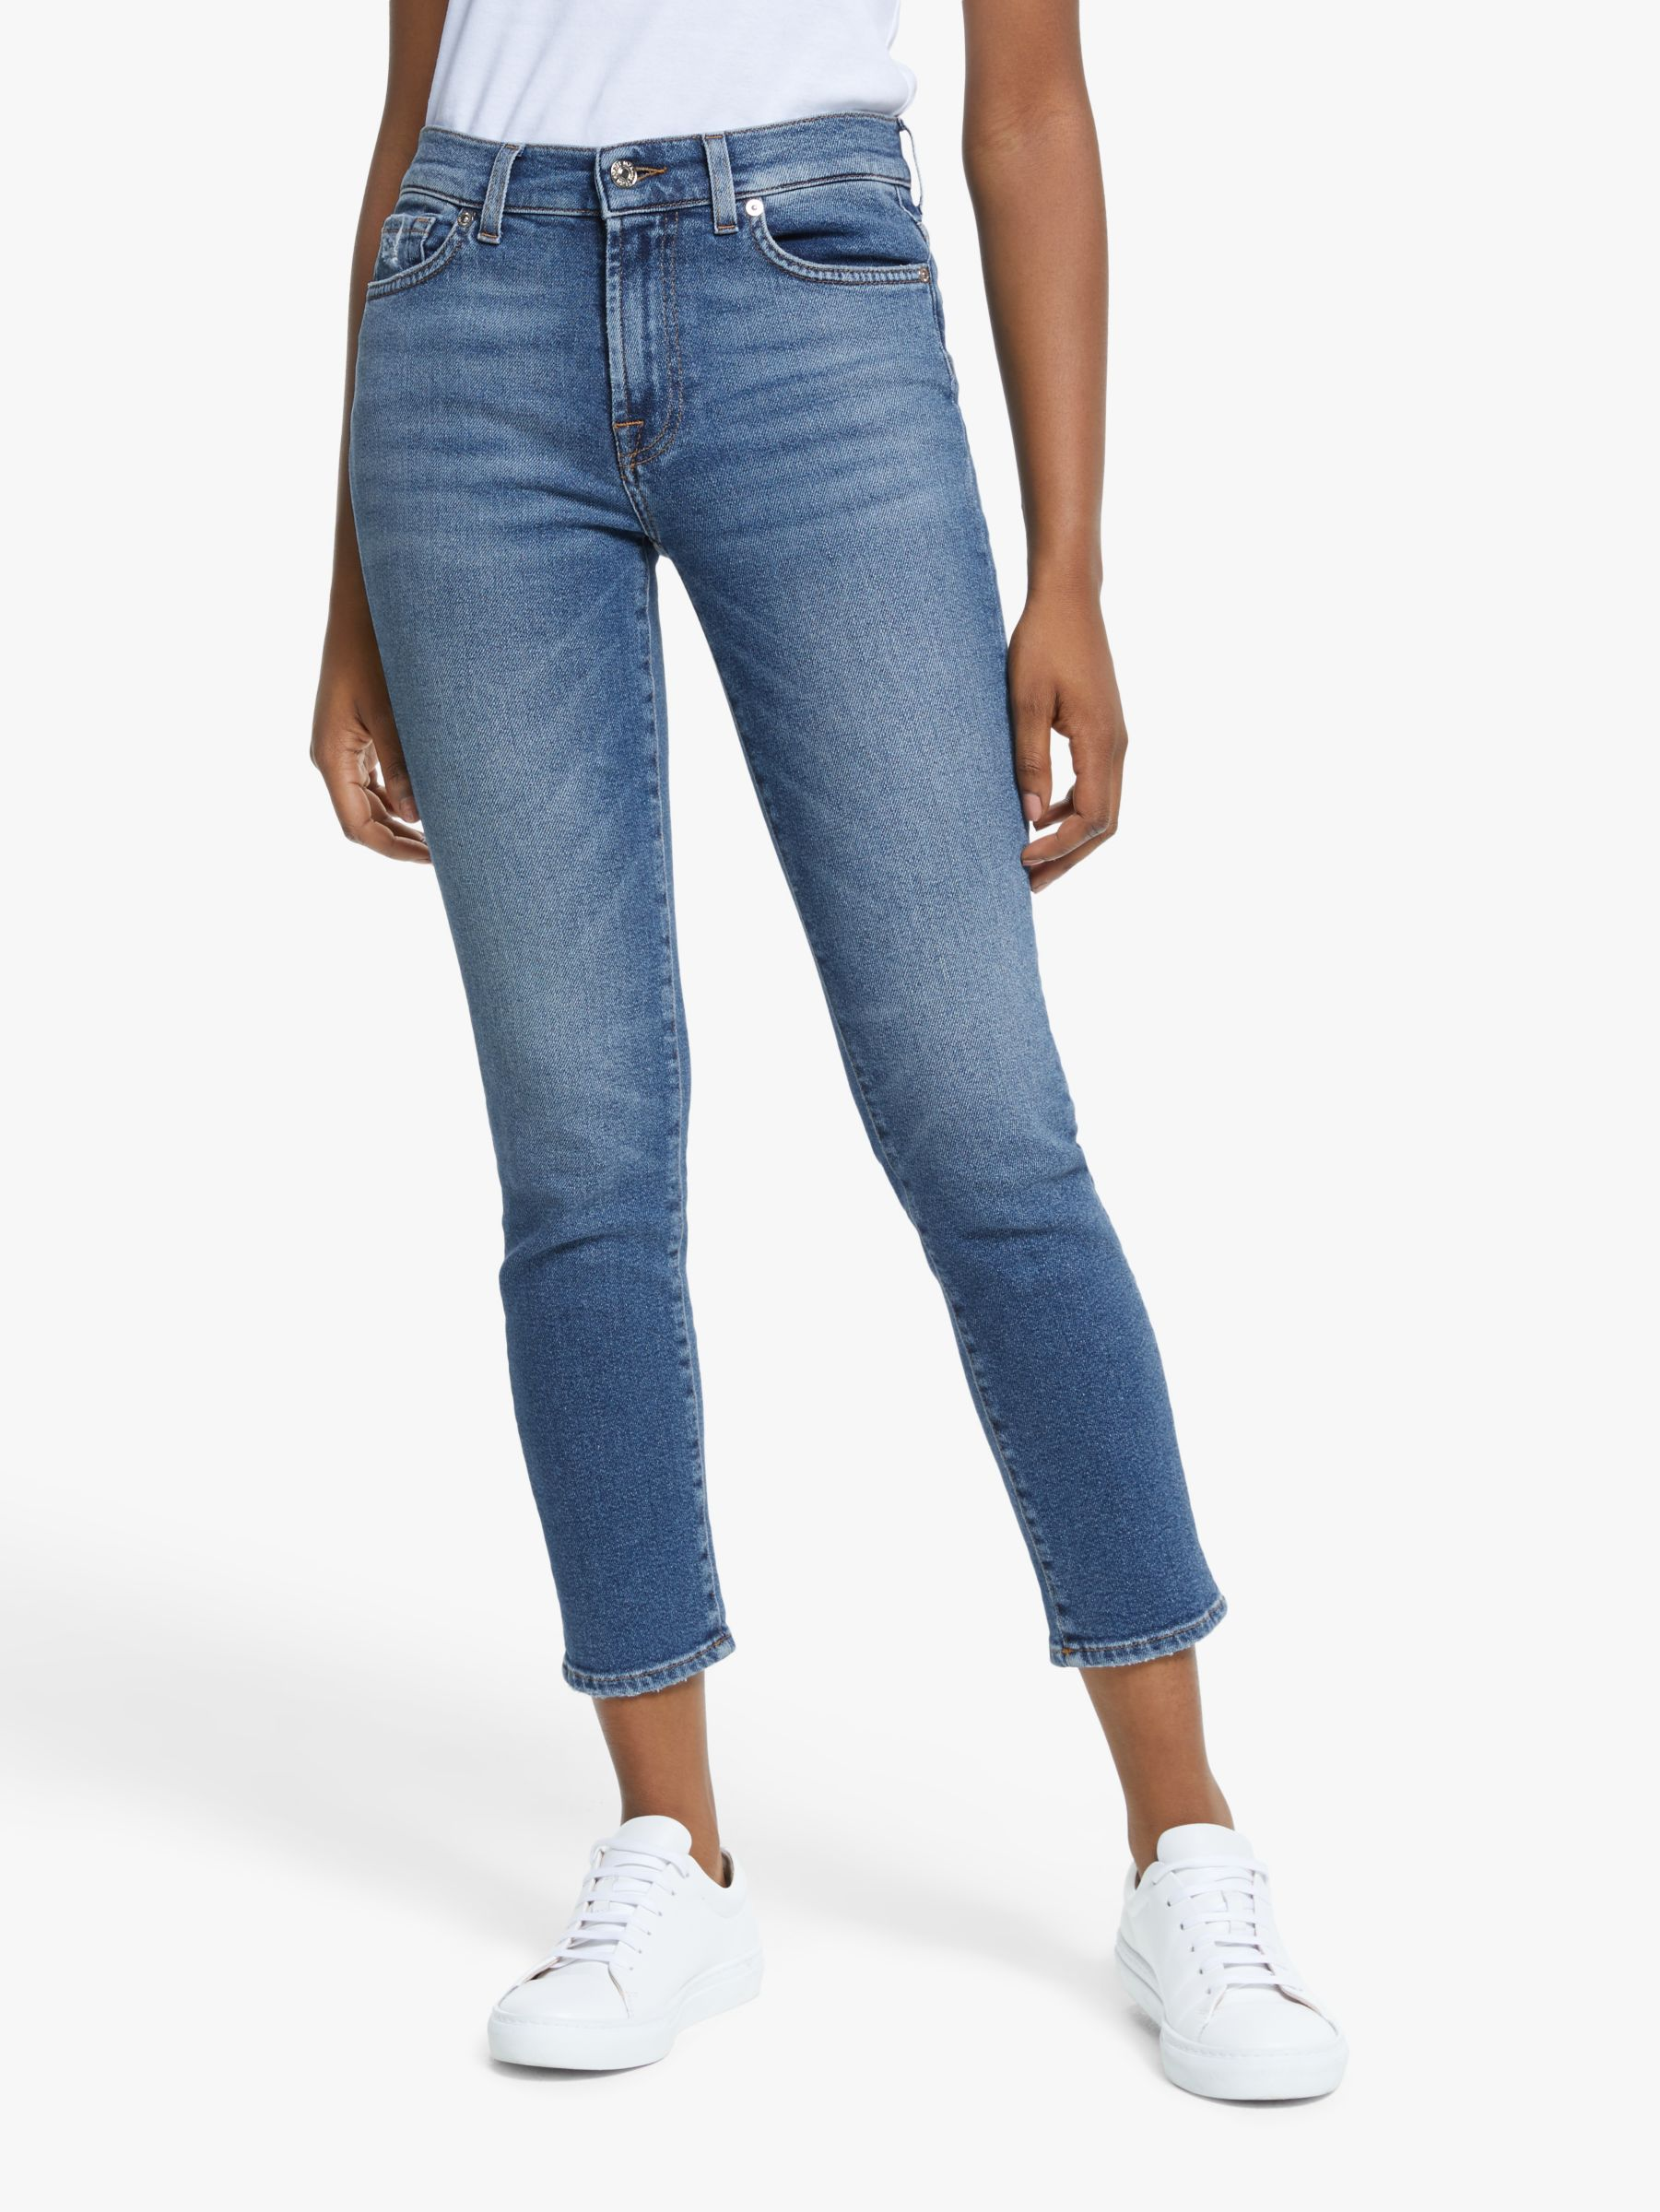 7 For All Mankind 7 For All Mankind Roxanne Luxe Vintage Ankle Jeans, Capitola Mid Blue